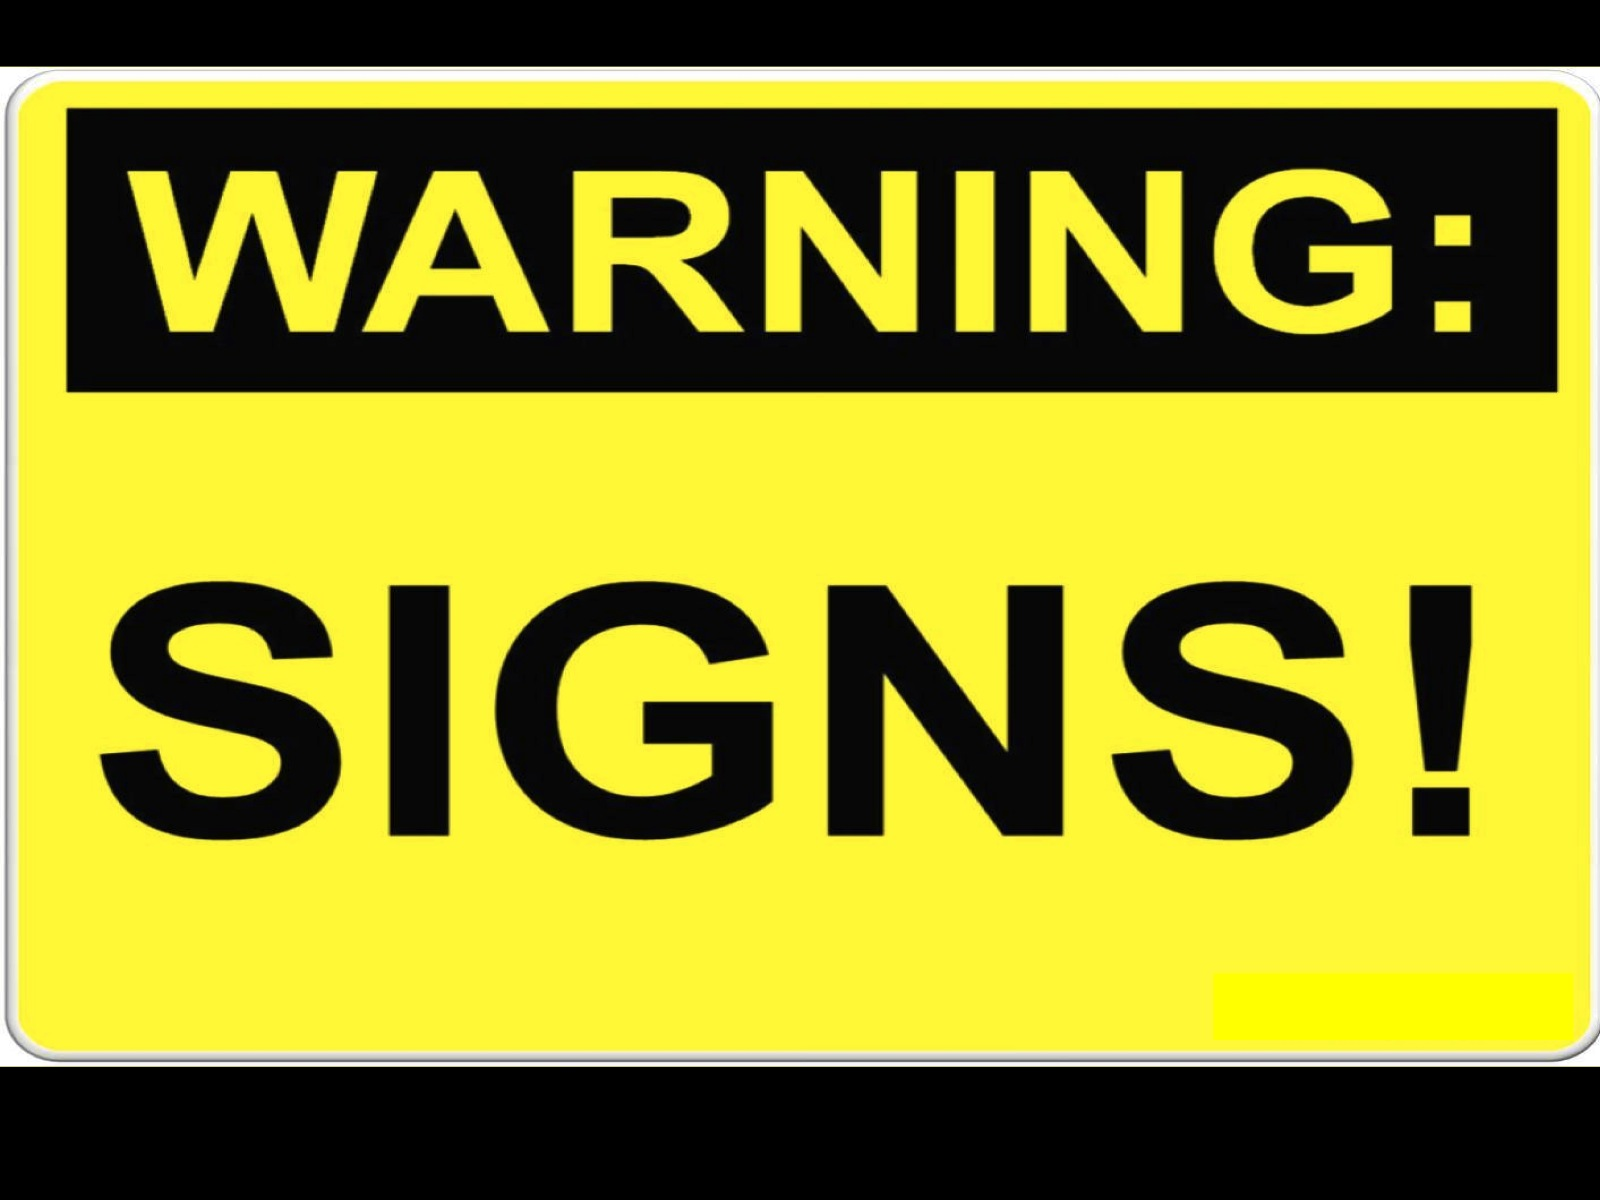 Funny Warning Signs and Symbols